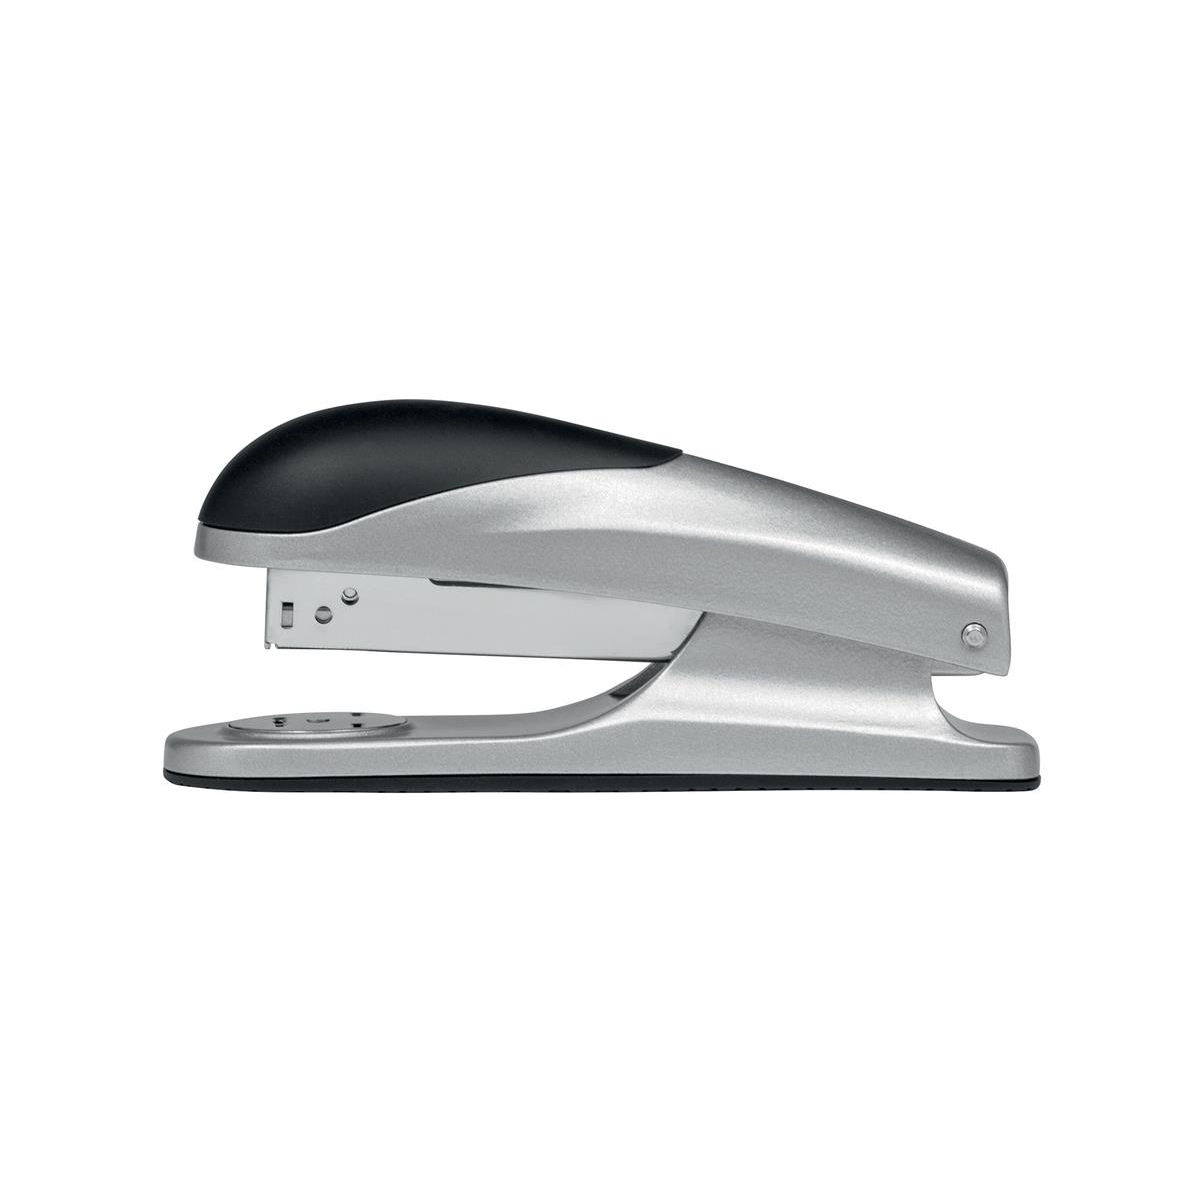 Desktop Staplers 5 Star Elite Stapler Half Strip Capacity 20 Sheets Silver